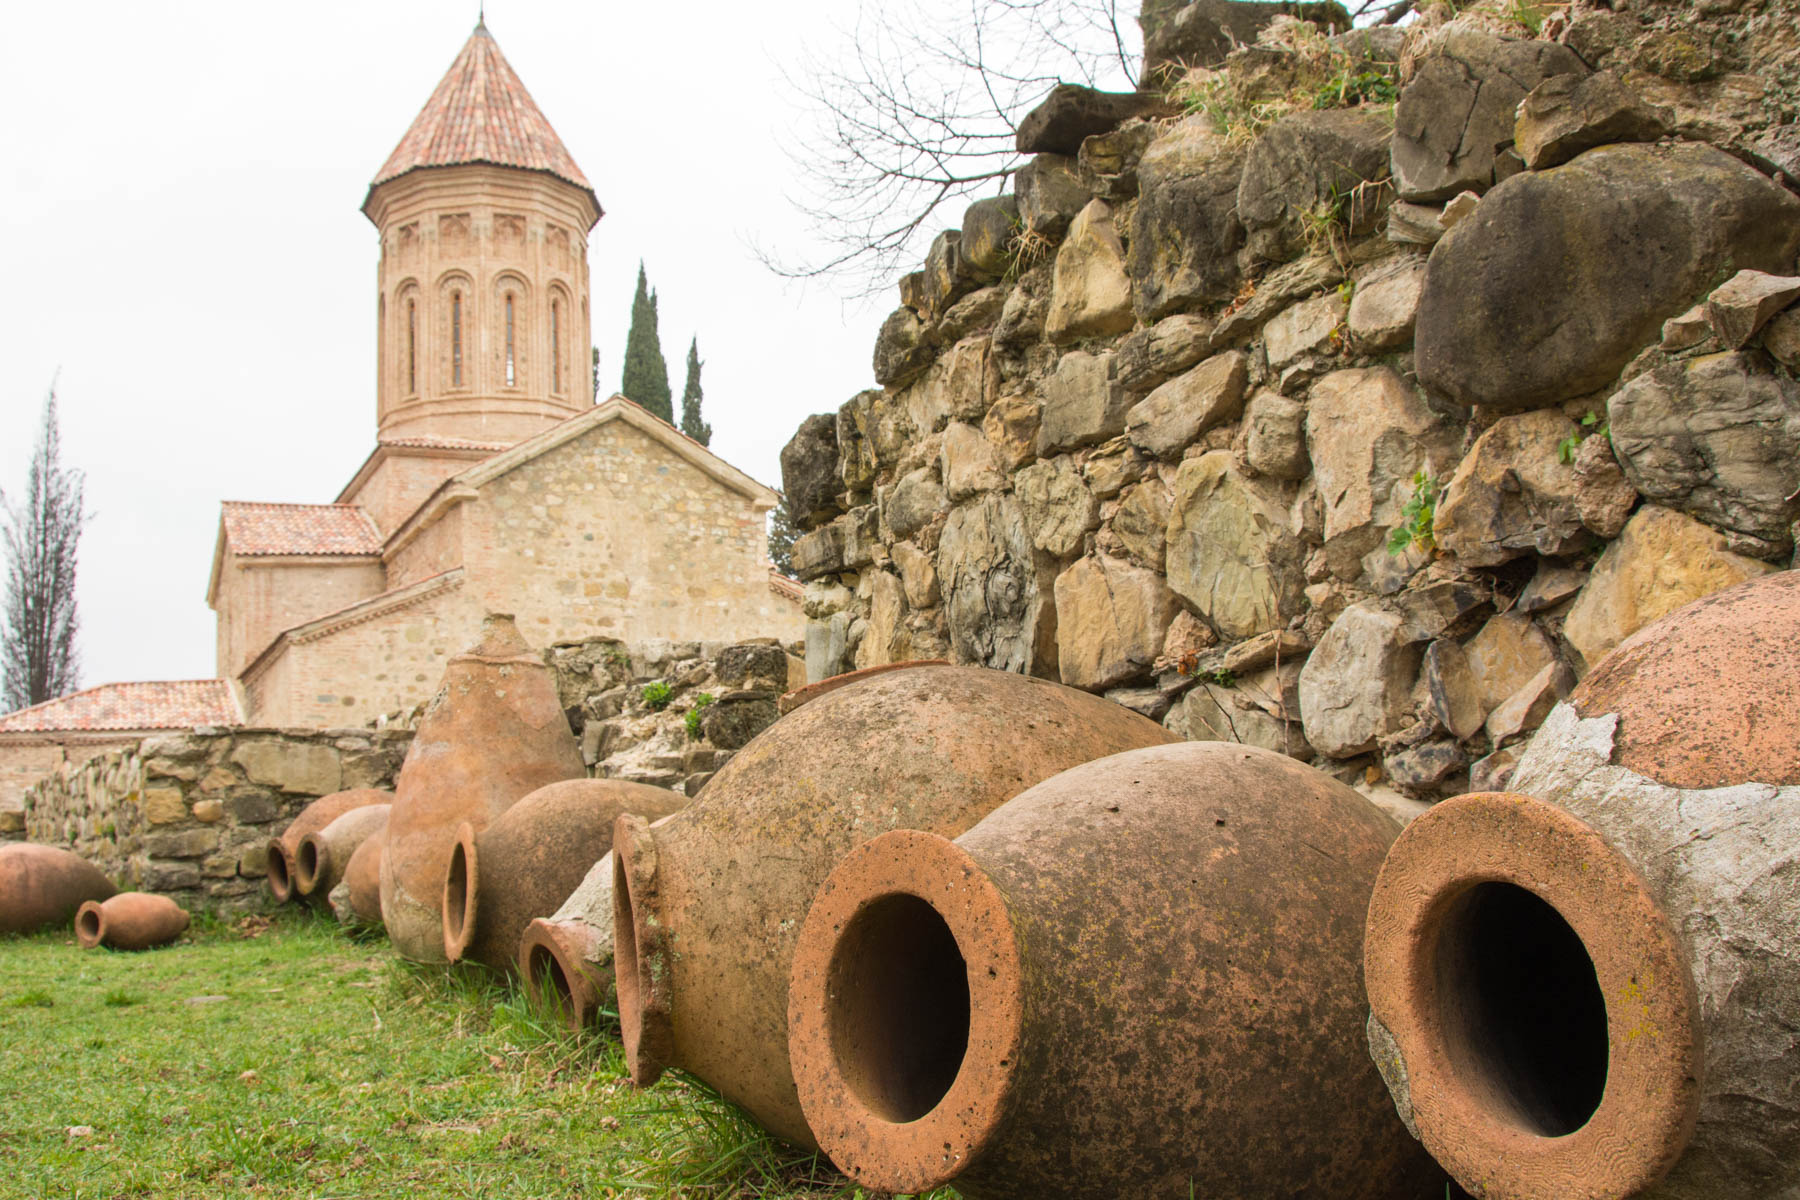 An old winery in Telavi, Georgia